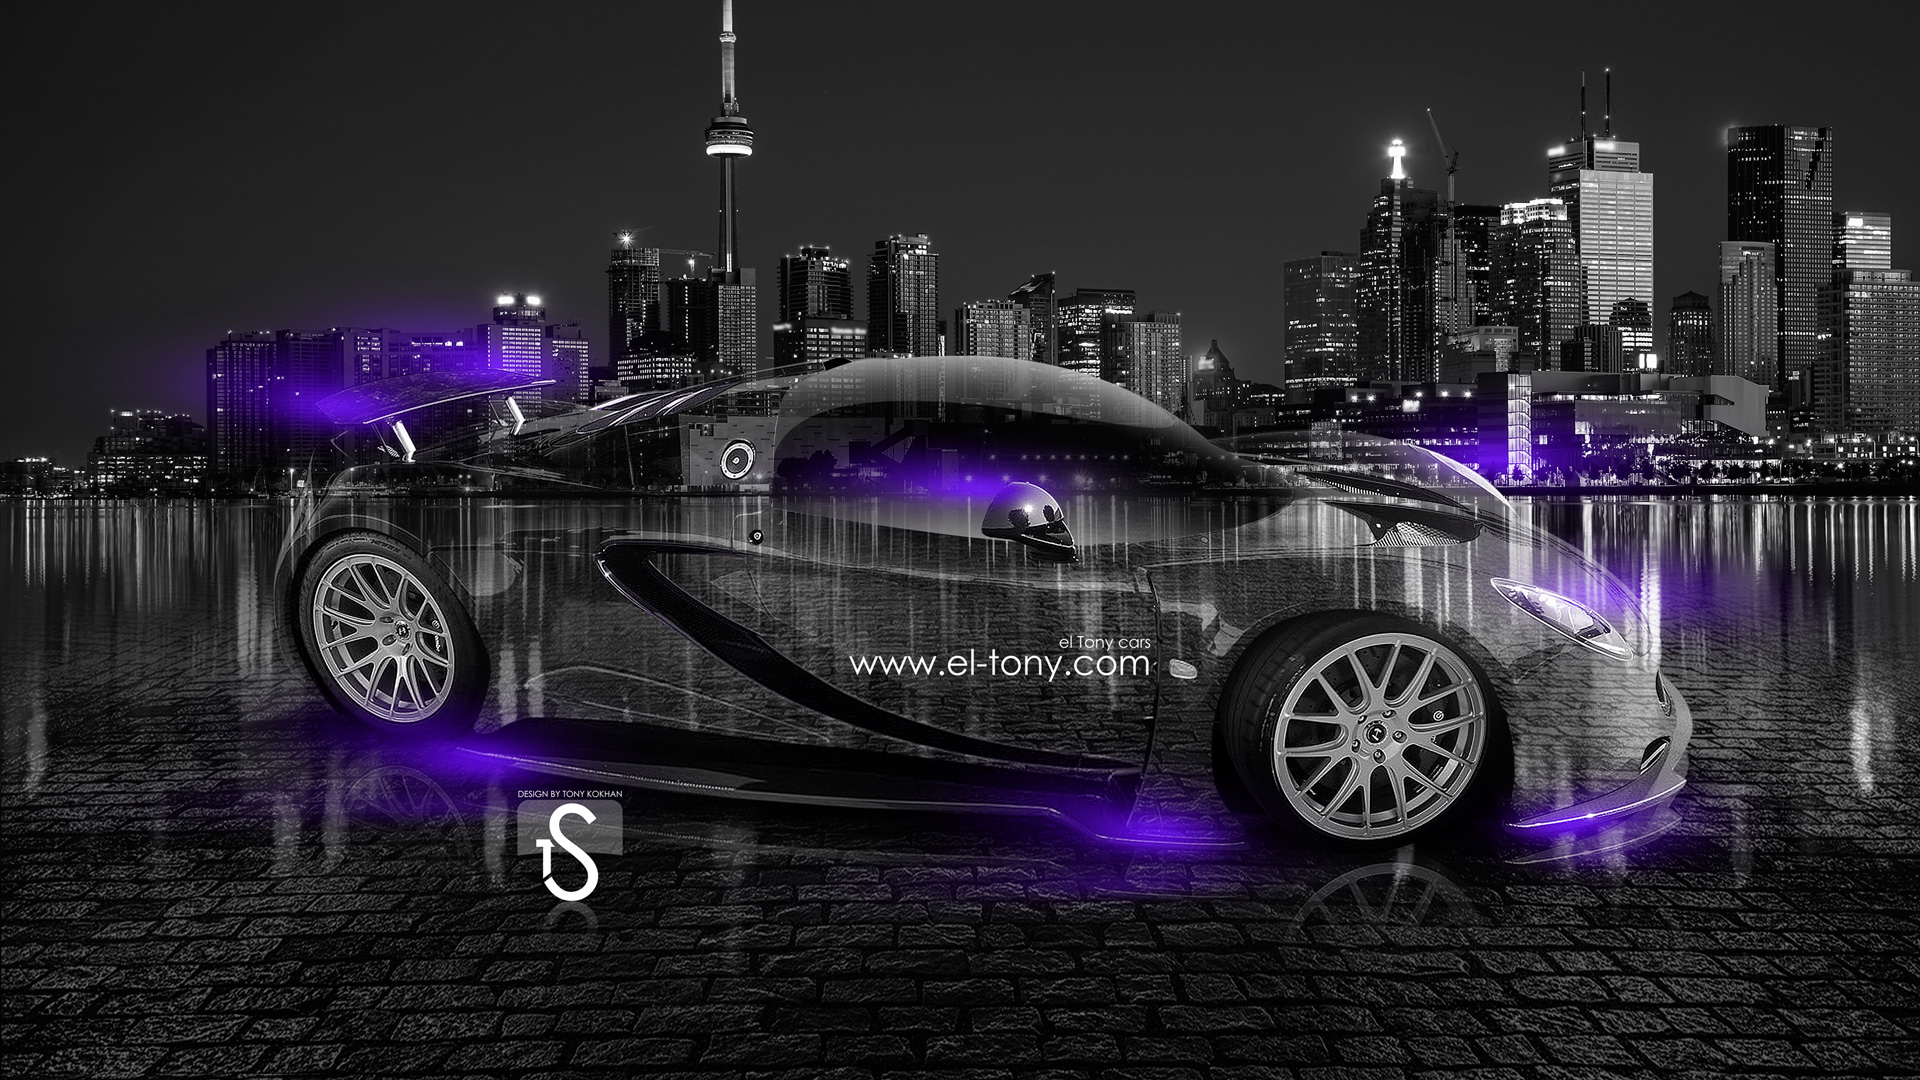 Hennessey-Venom-GT-Crystal-City-Car-2014-Violet-Neon-design-by-Tony-Kokhan-[www.el-tony.com]